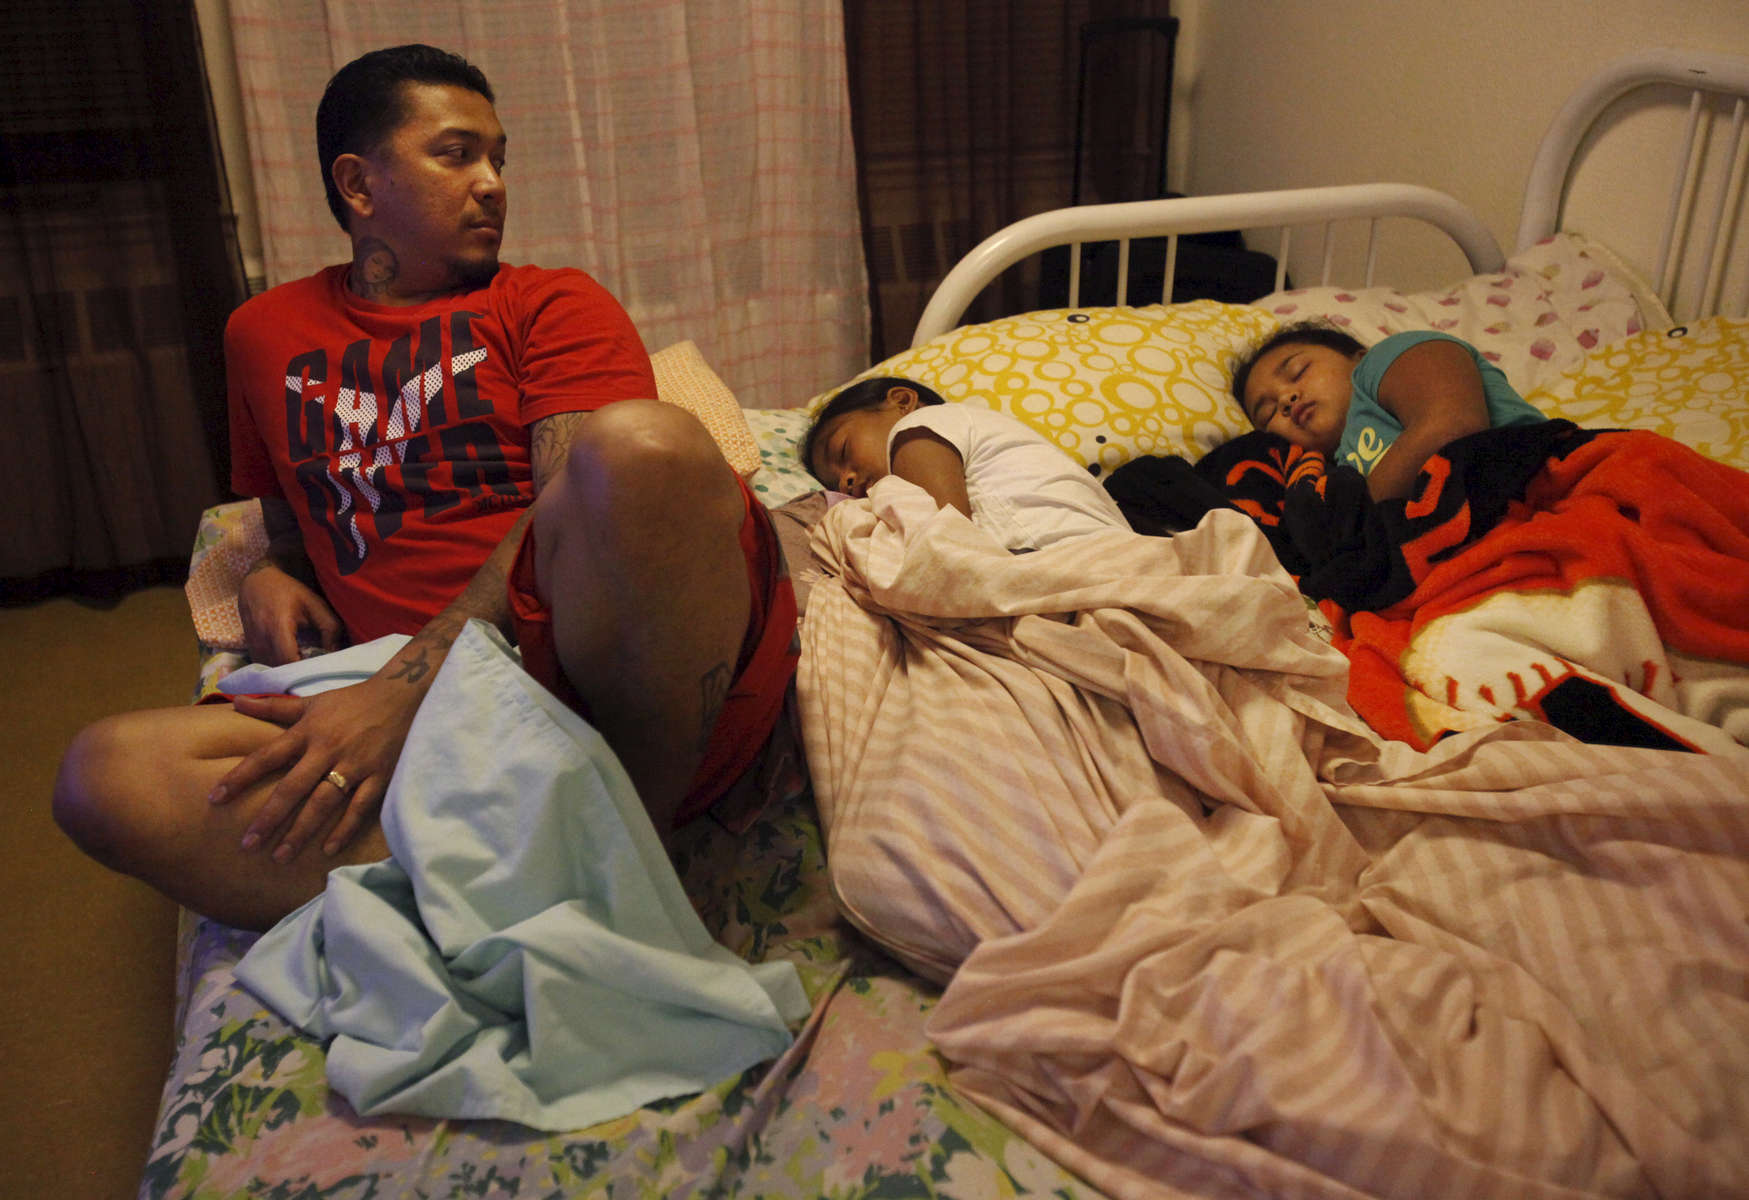 Red Rodrigo glances over at his two daughters, Brennelyn, 8, right, and Bryanna, 11, as they sleep in the bed he and his wife (their mother) sleep on in the living room in their transitional apartment Oct. 21, 2014 in San Francisco, Calif. Because the children grew up sleeping together, sometimes all five in one bed, the two youngest still like sleeping with their parents. The Rodrigo family has been living in transitional housing for almost a year after staying with a large number of family members in a very small apartment. The family hasn\'t really had a place of their own and have enjoyed having the apartment to themselves but their time allotted in the place is almost up.